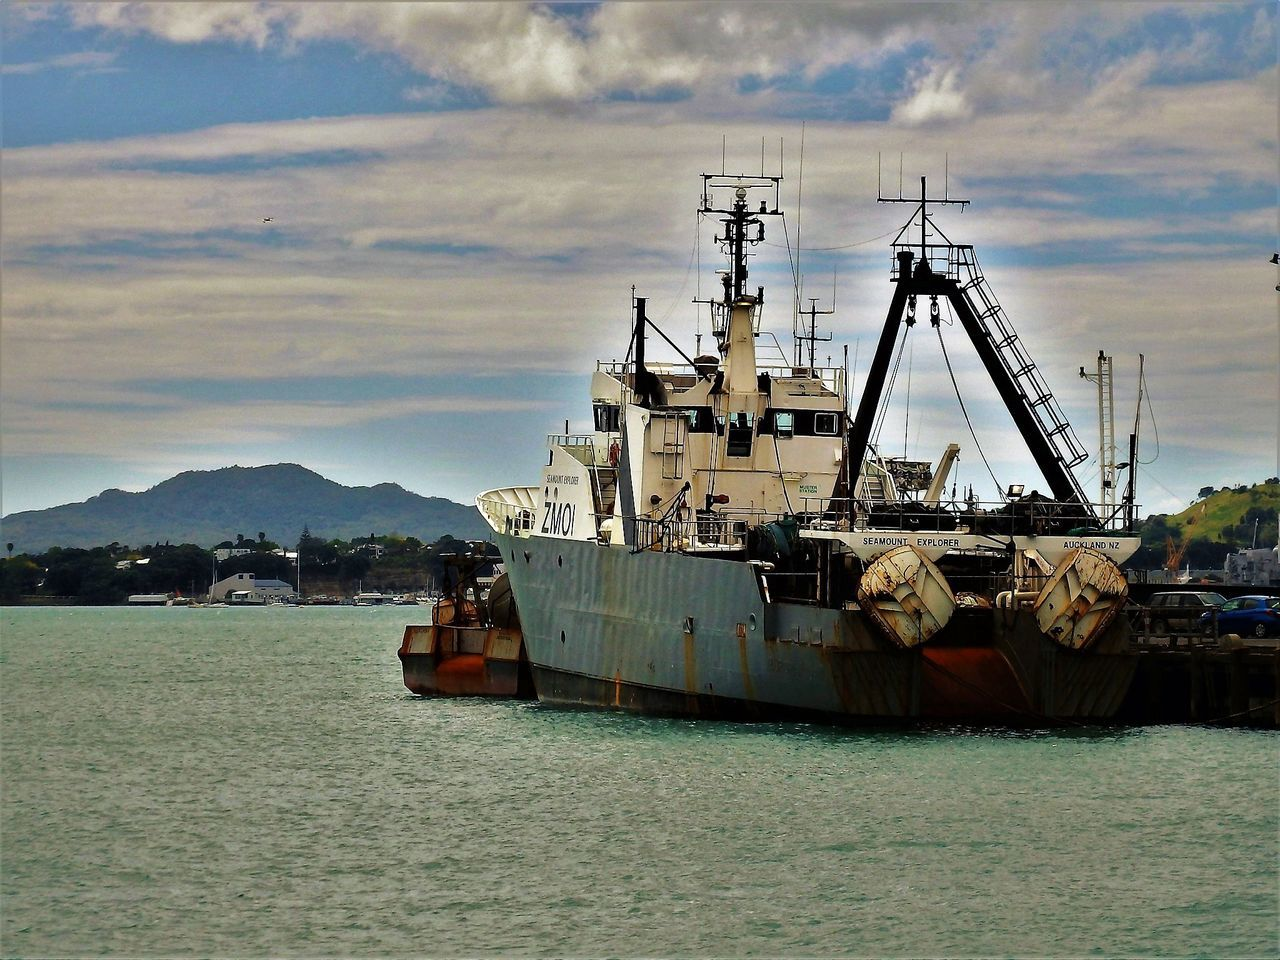 nautical vessel, transportation, water, mode of transport, sky, cloud - sky, mountain, ship, sea, moored, outdoors, waterfront, no people, freight transportation, day, nature, sailing, harbor, military, beauty in nature, oil pump